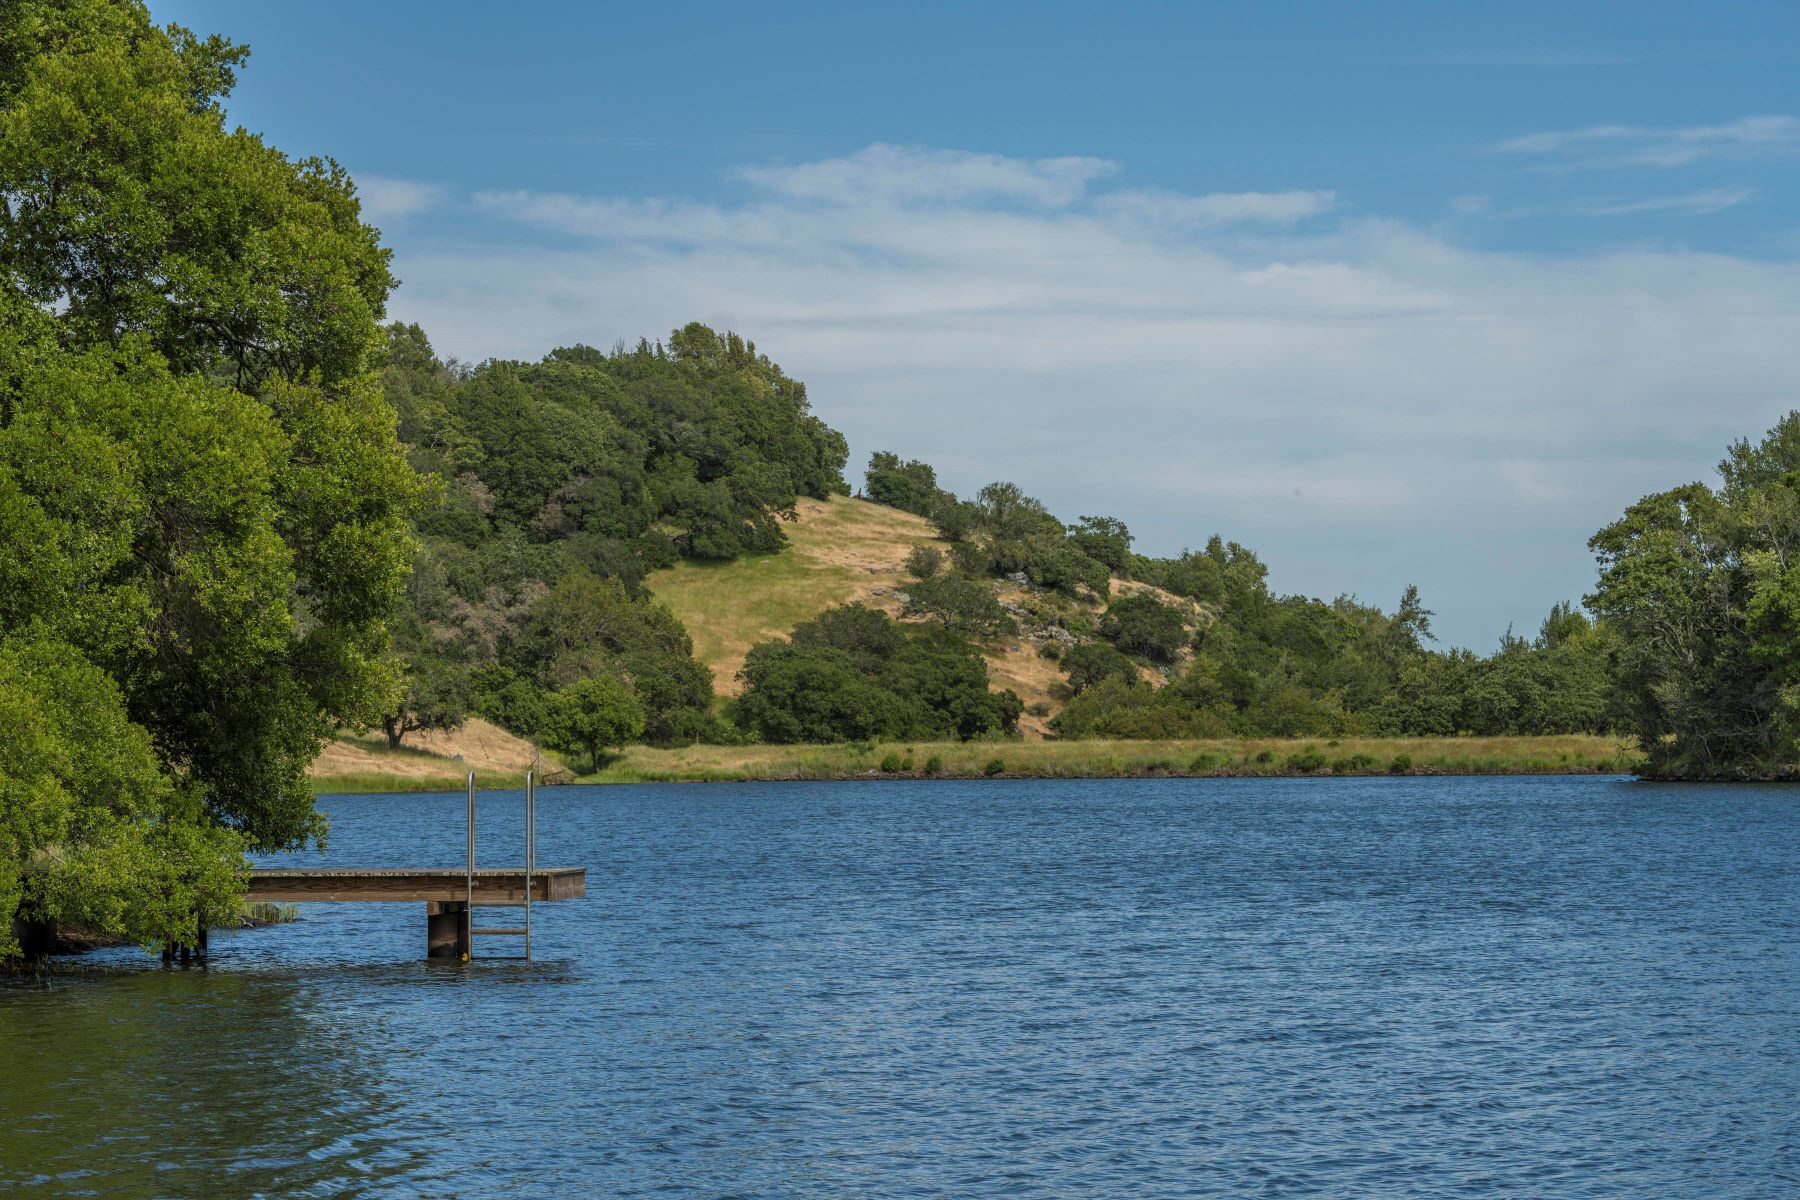 Vineyard Real Estate for Sale at 950 ac in Napa Valley Heaven on Earth 1681 Green Valley Rd Napa, California 94558 United States